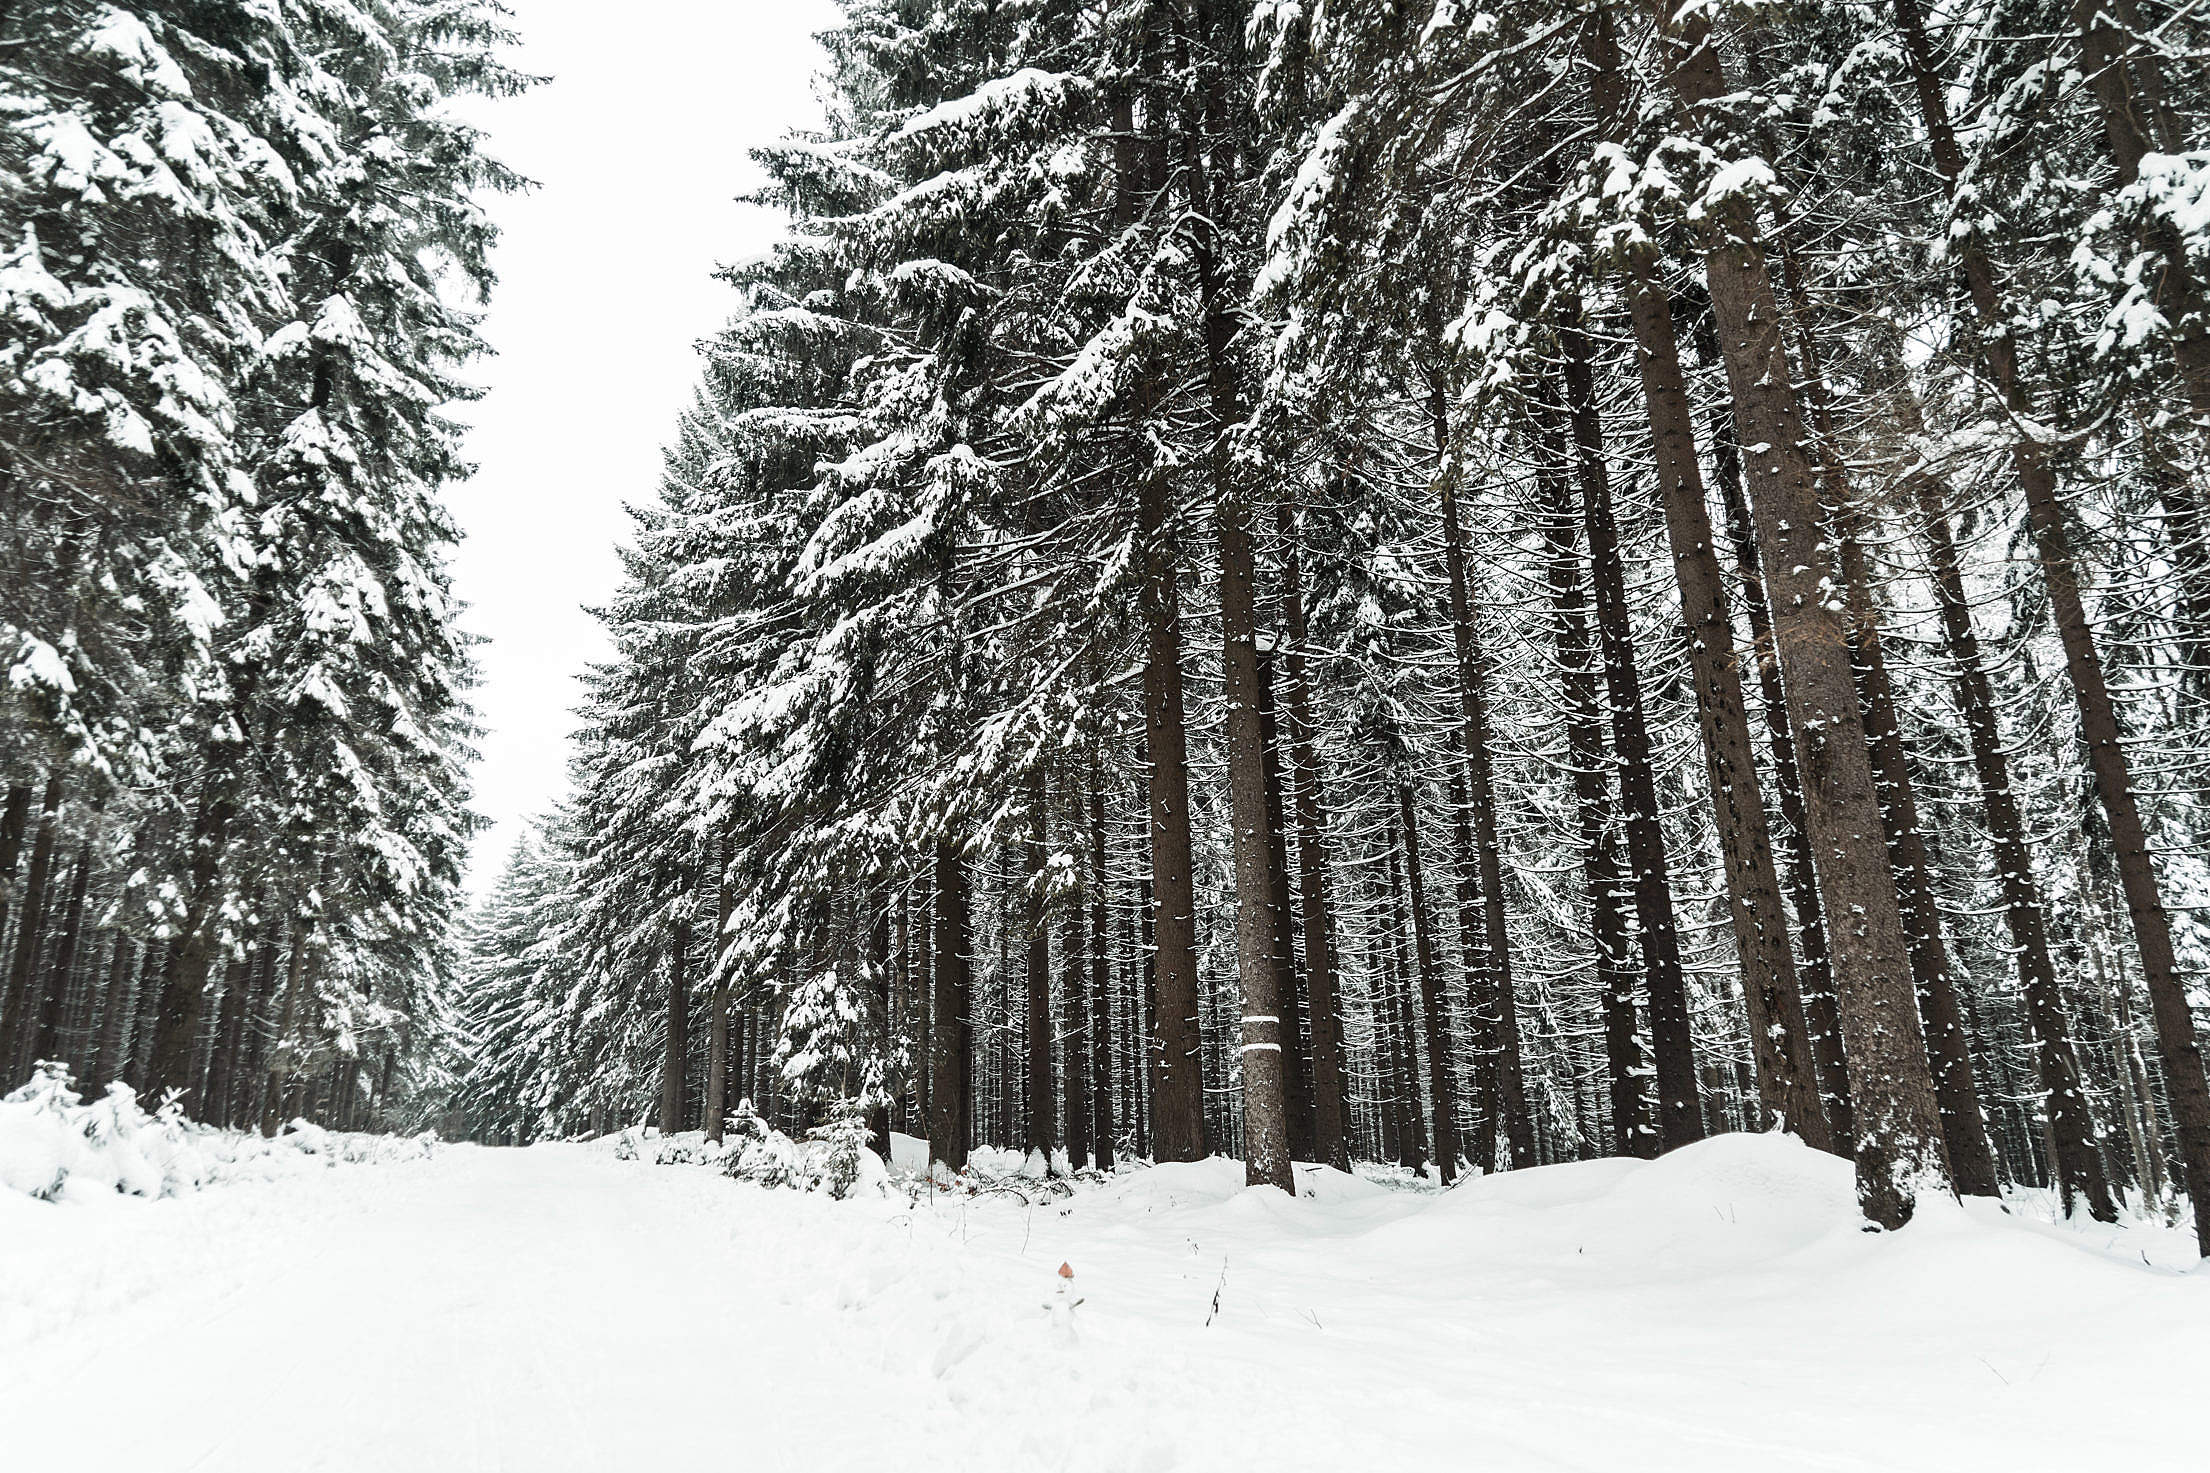 Winter Forest Covered with Snow Free Stock Photo